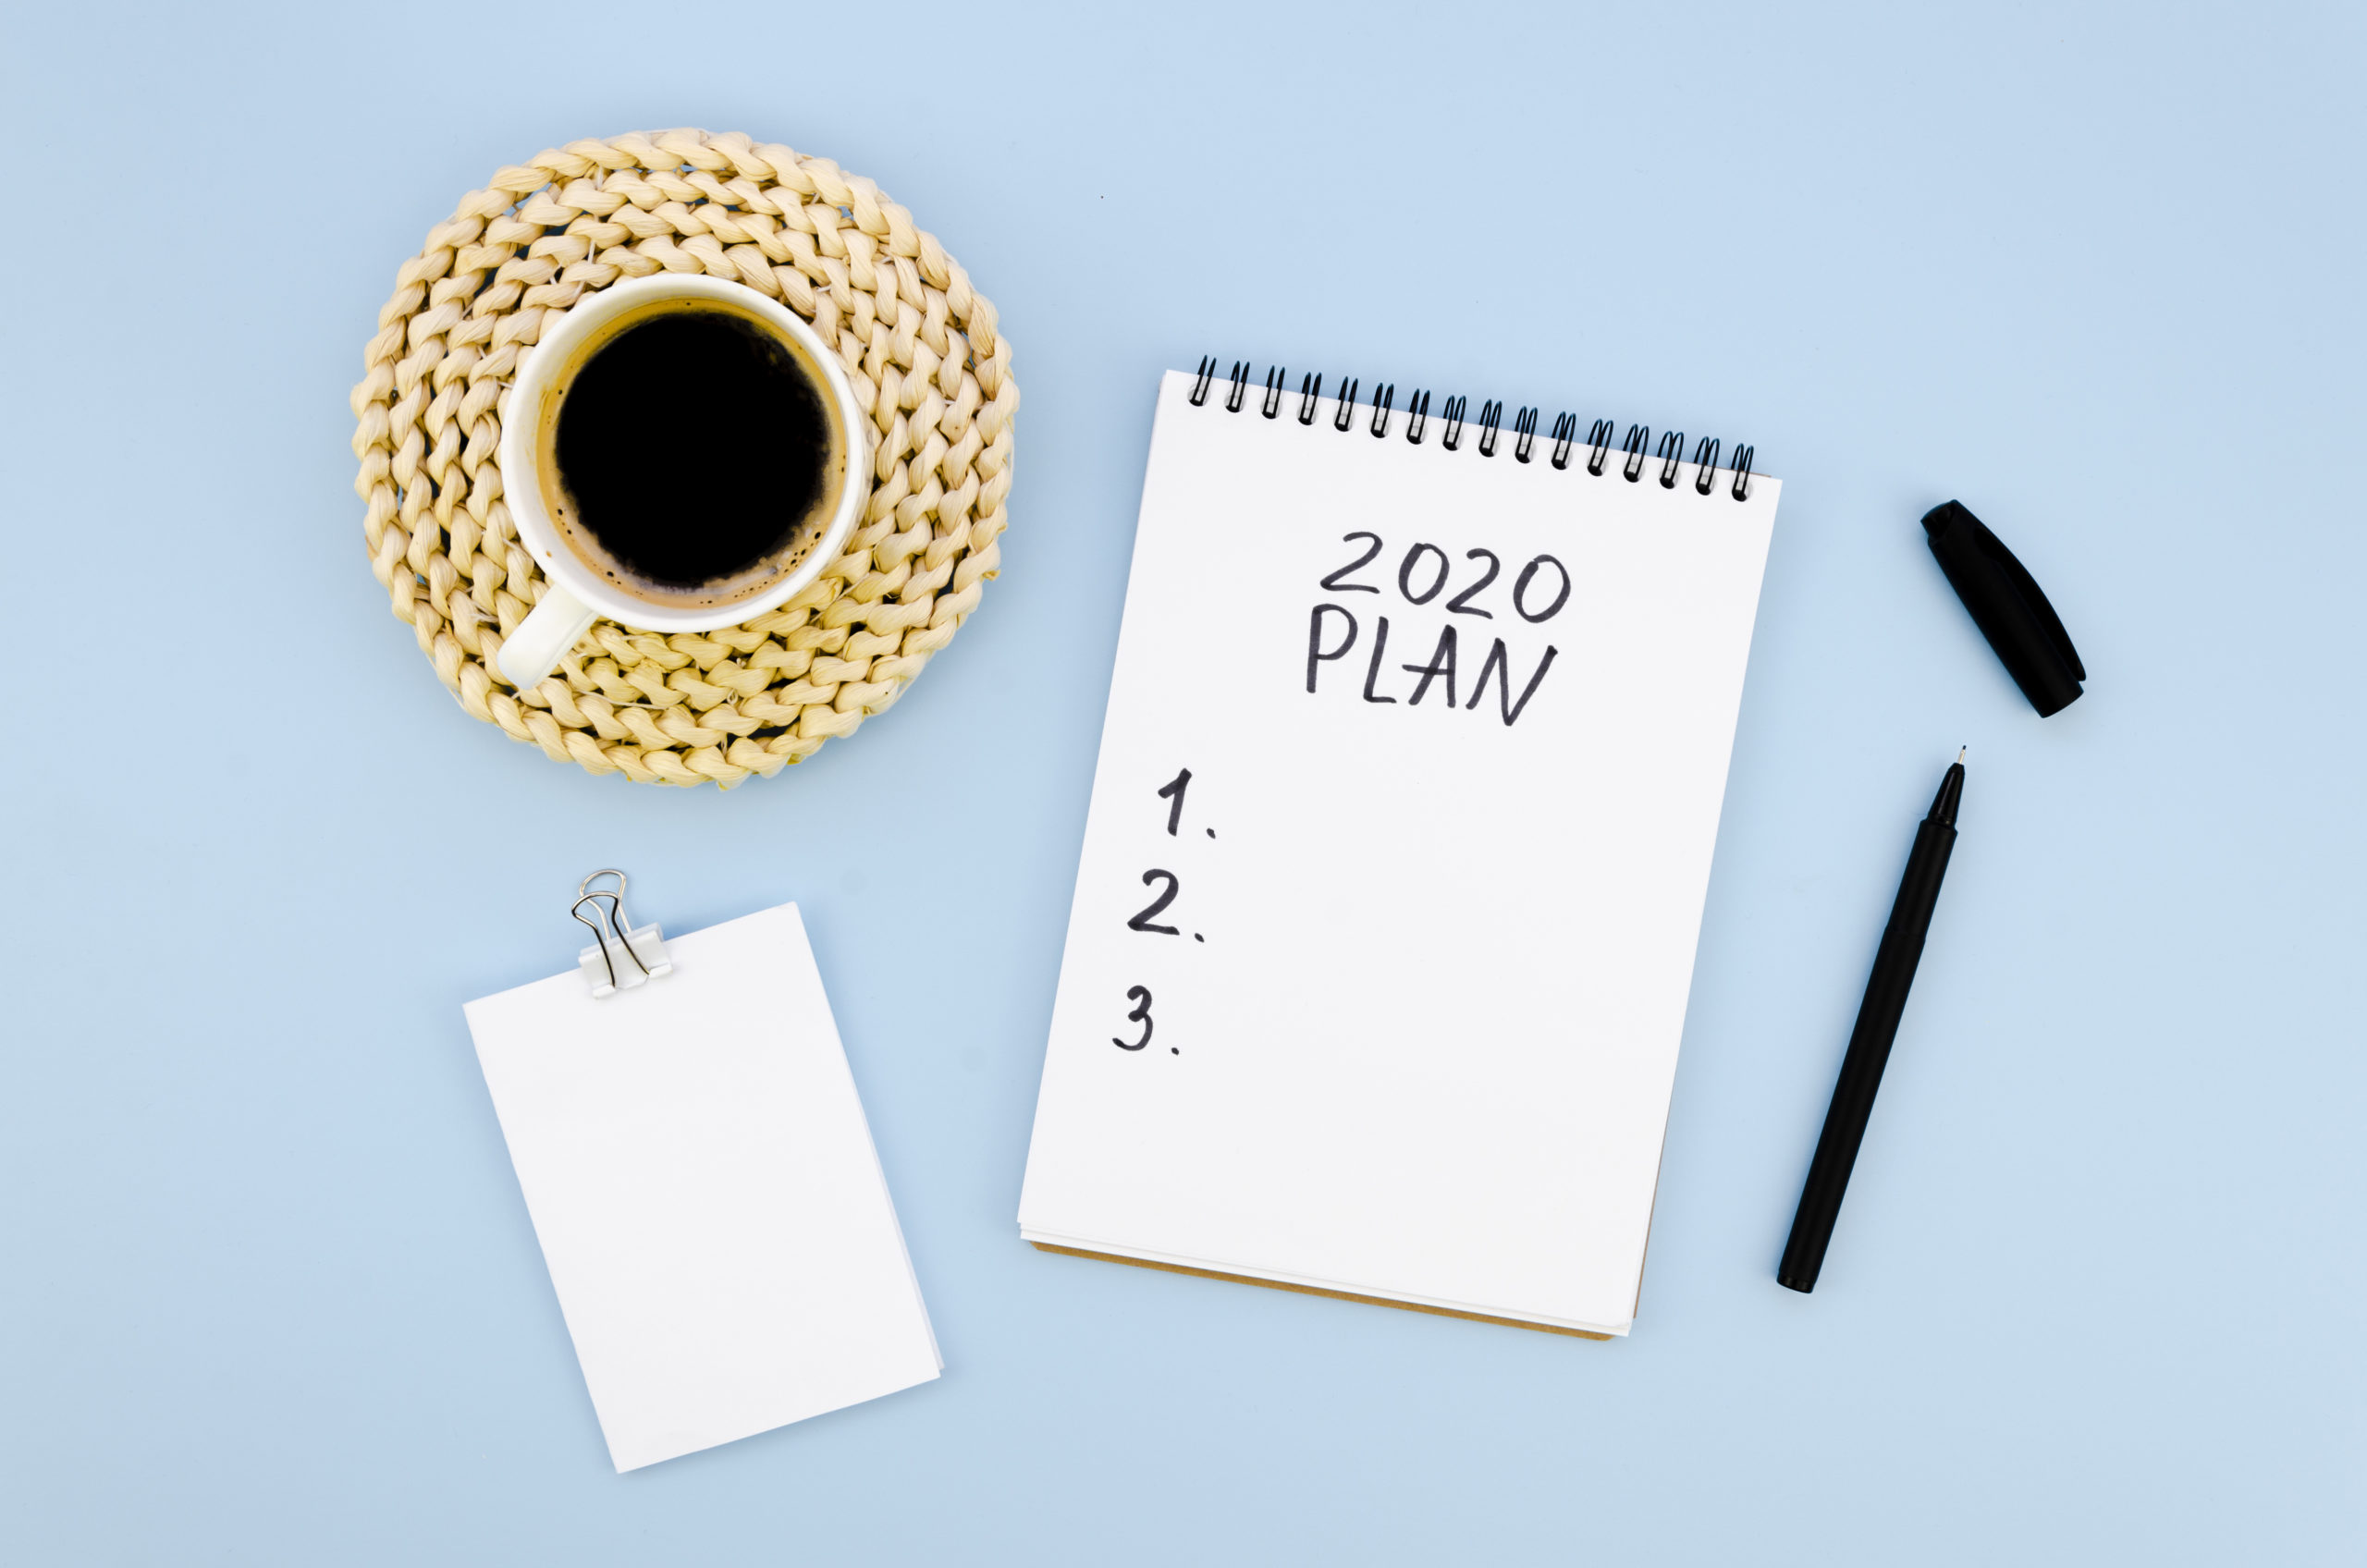 7 Invaluable Things Every Freelancer Should Do Before Wrapping up 2020